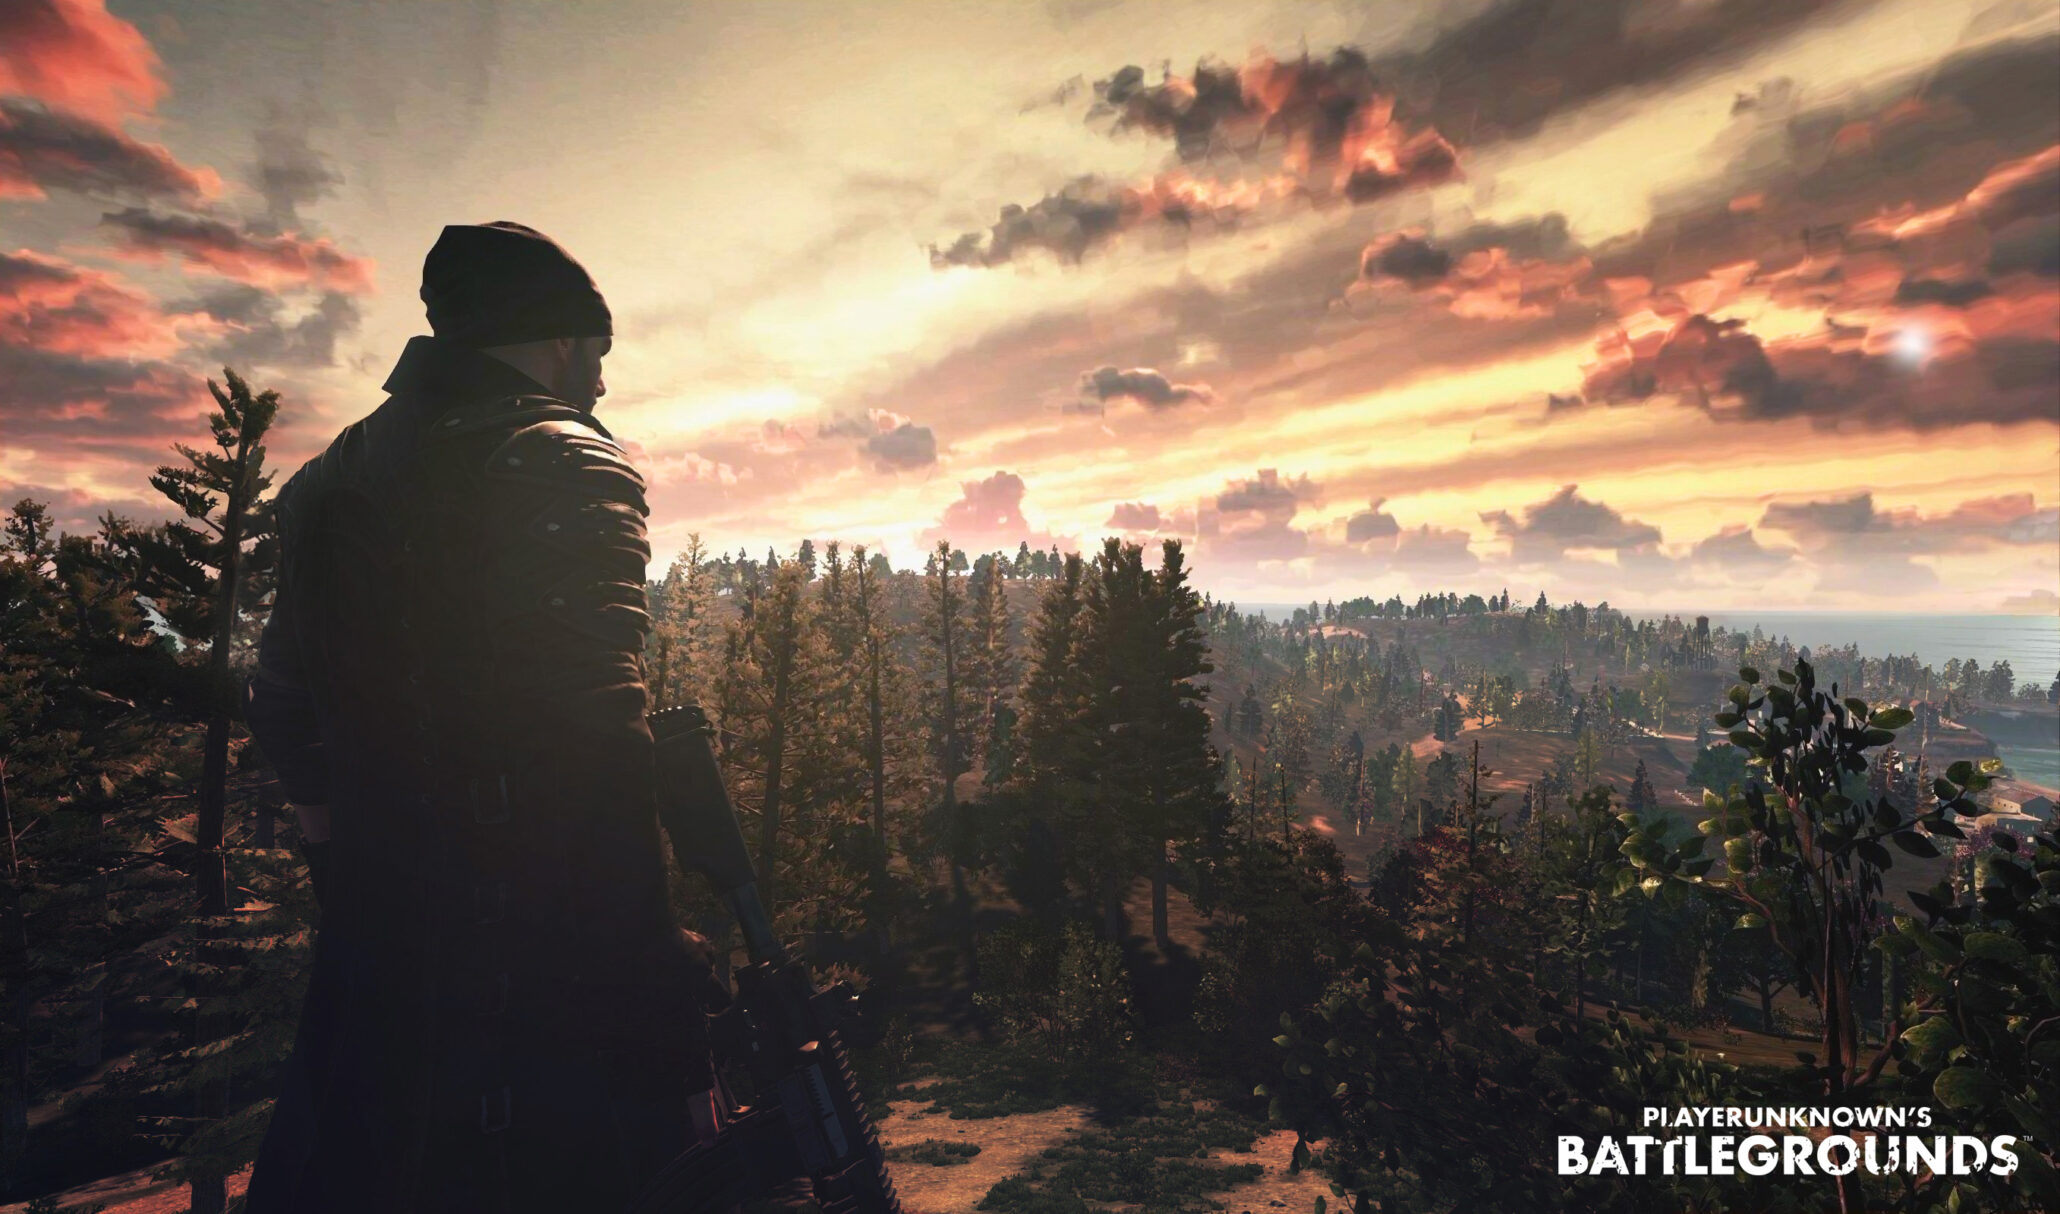 PLAYERUNKNOWN's BATTLEGROUNDS Is a Battle Royale Game